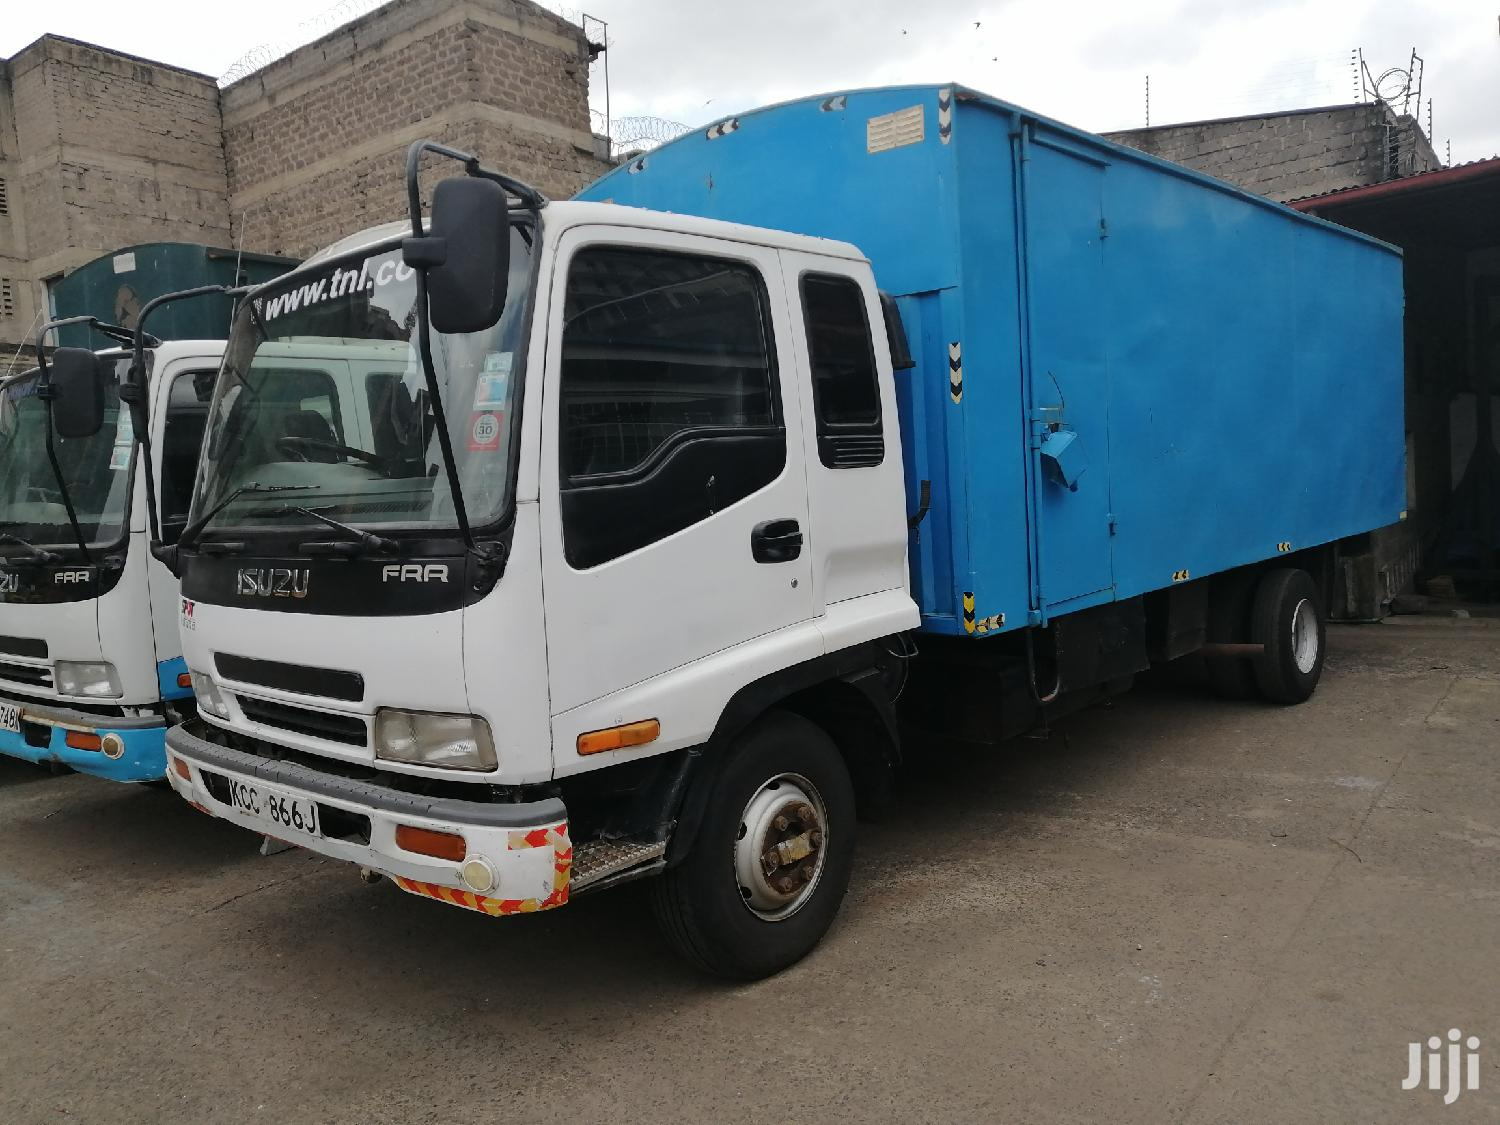 Archive: Isuzu FRR Available for Sale